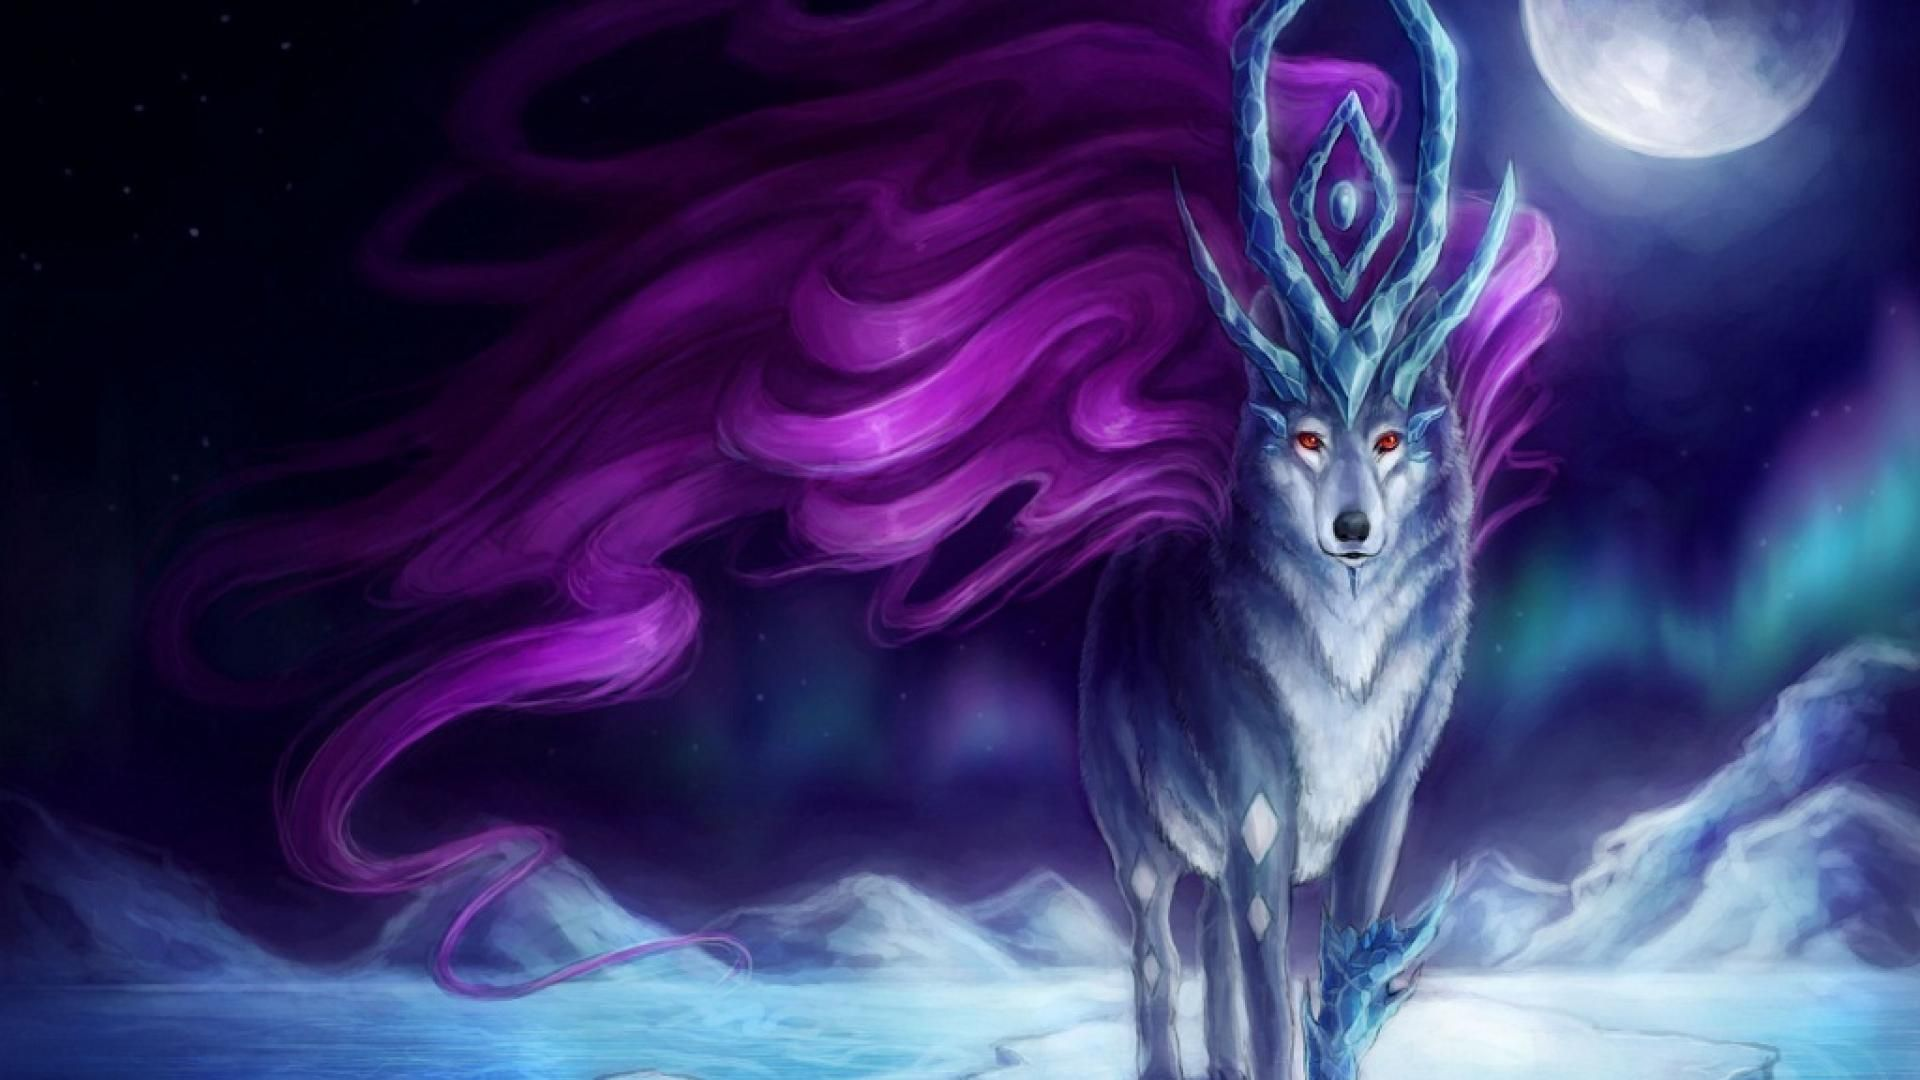 1920x1080 Anime wolf | Awesome! | Fantasy, Fantasy art, Anime wolf